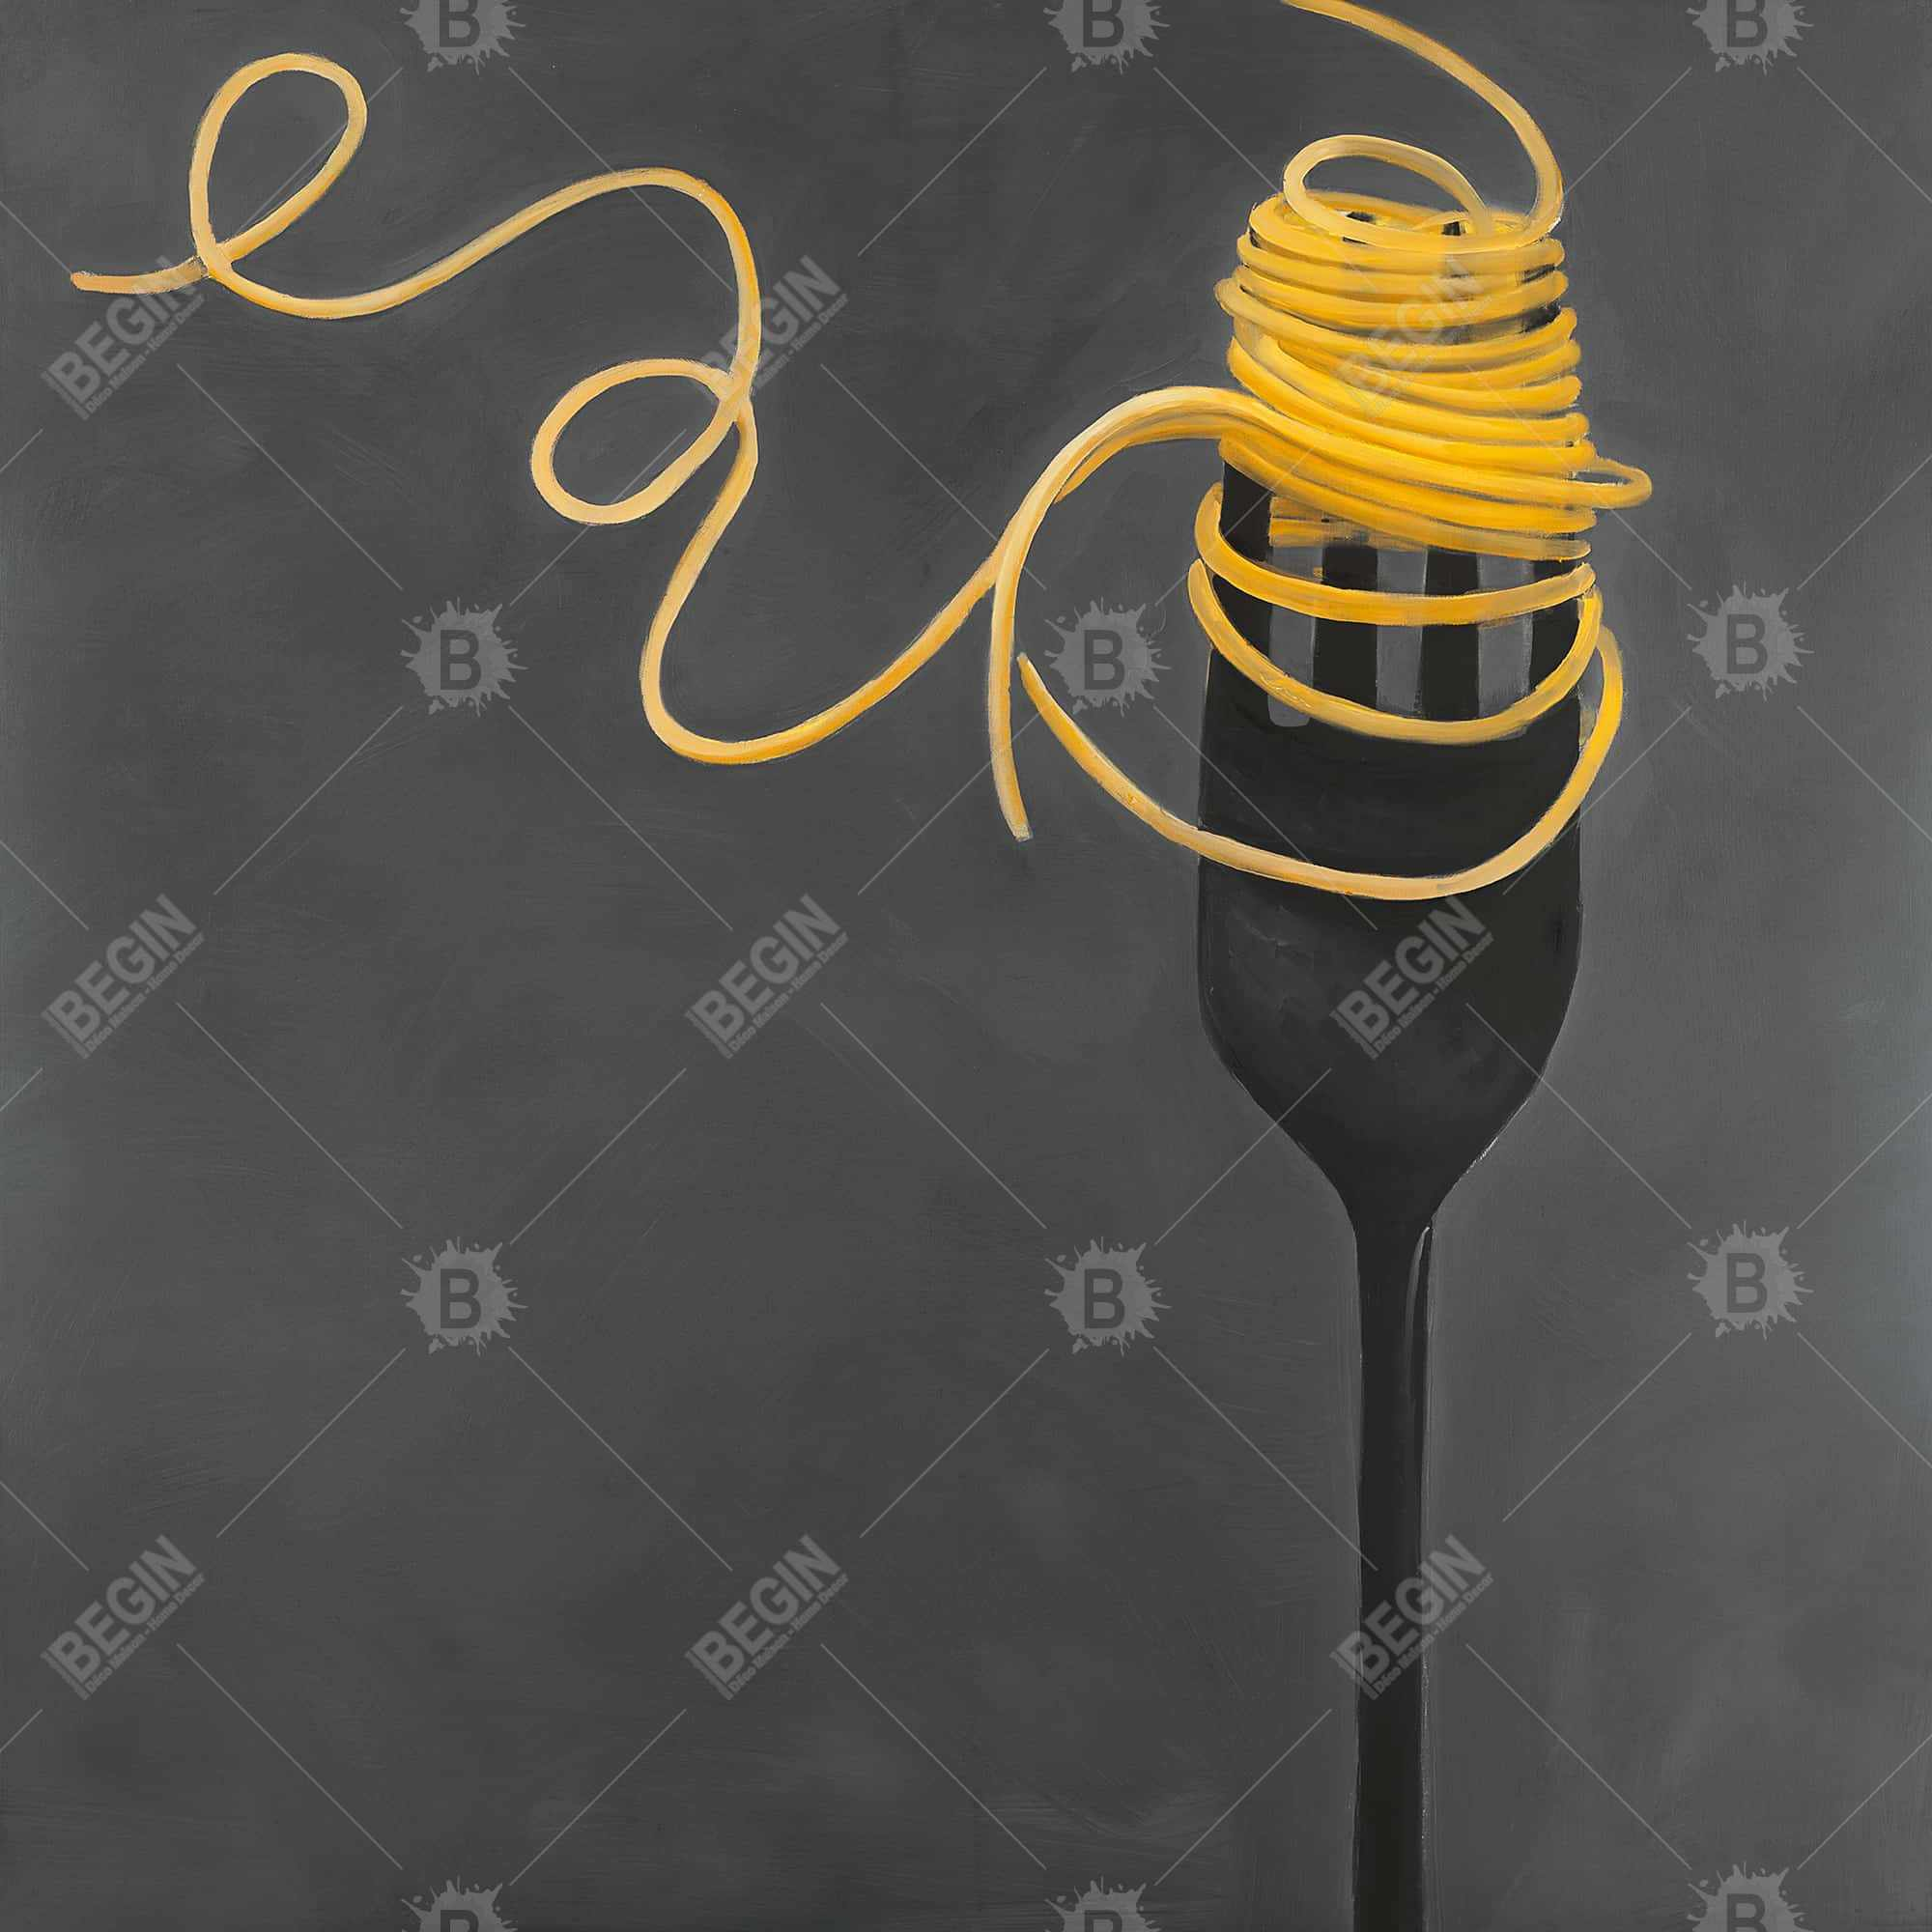 Spaghetti pasta around a fork